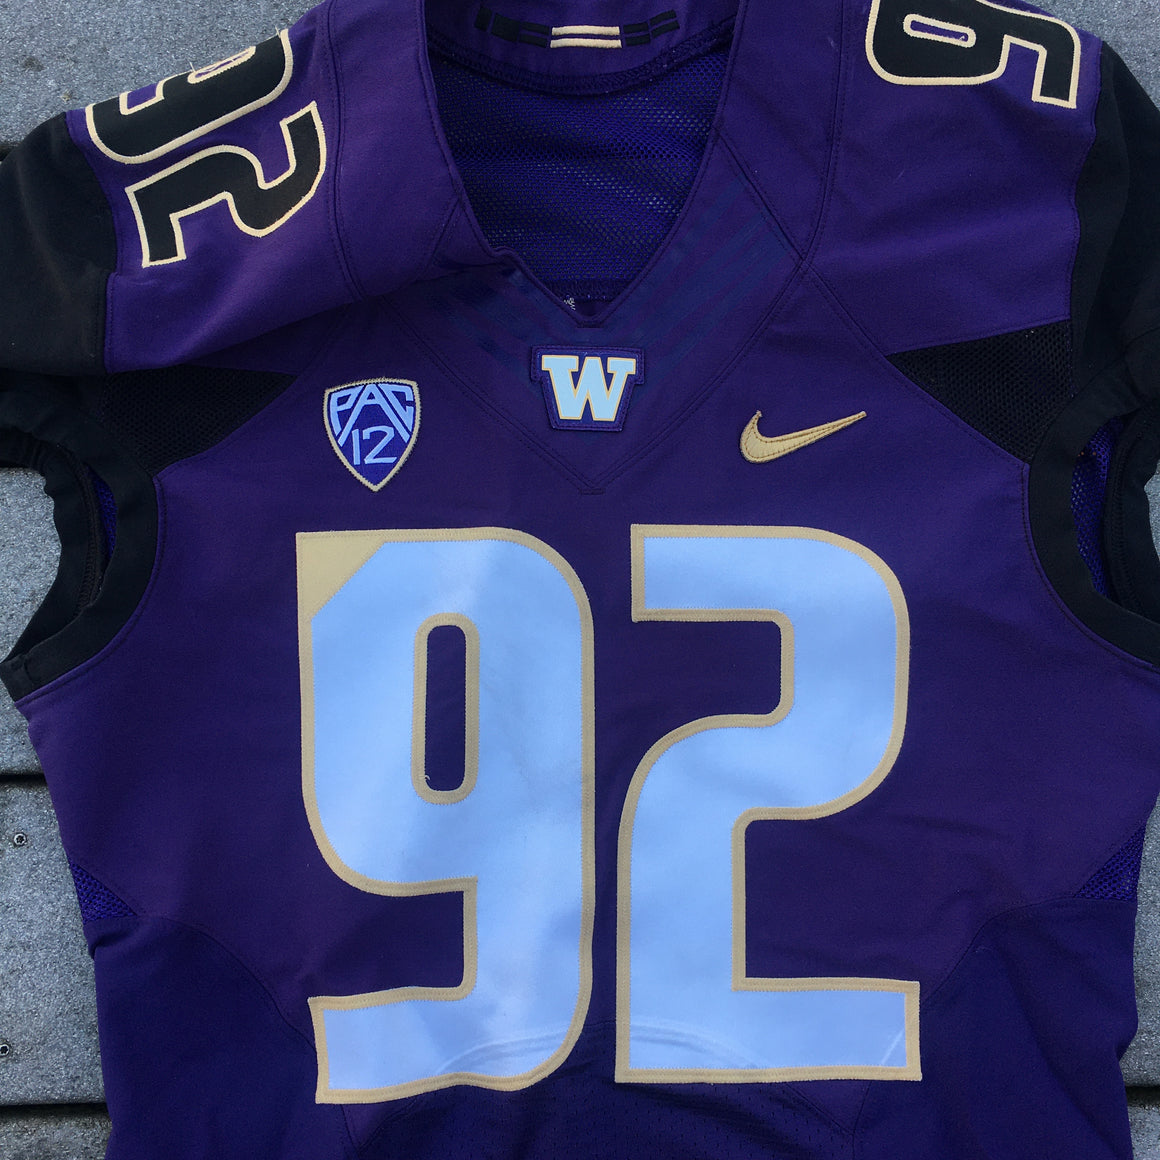 Washington Huskies #92 authentic jersey -  42 / L